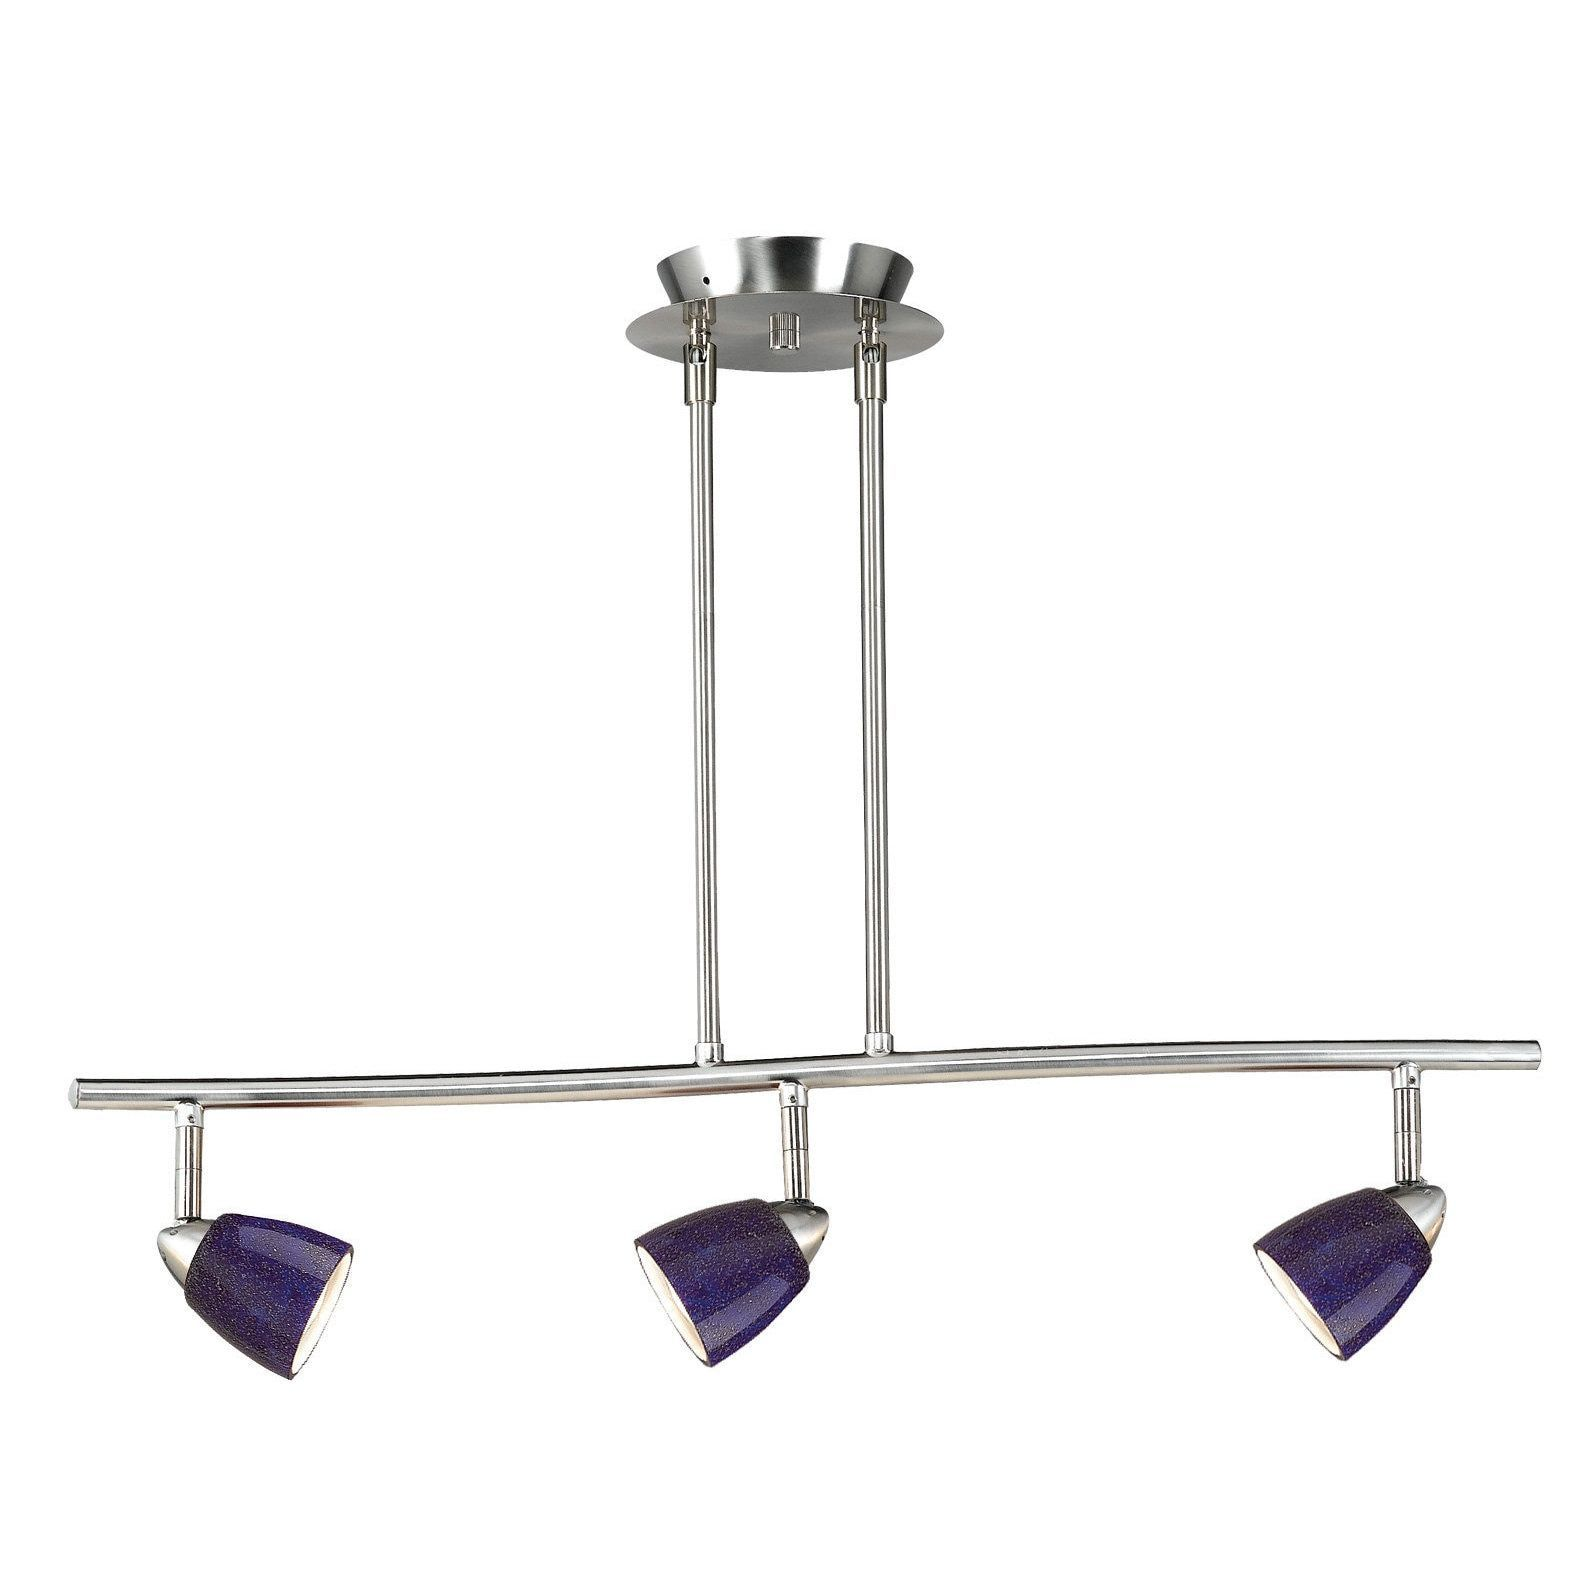 blue track lighting. 120-volt 3-light Serpentine Light (Track Lights), Blue Track Lighting -